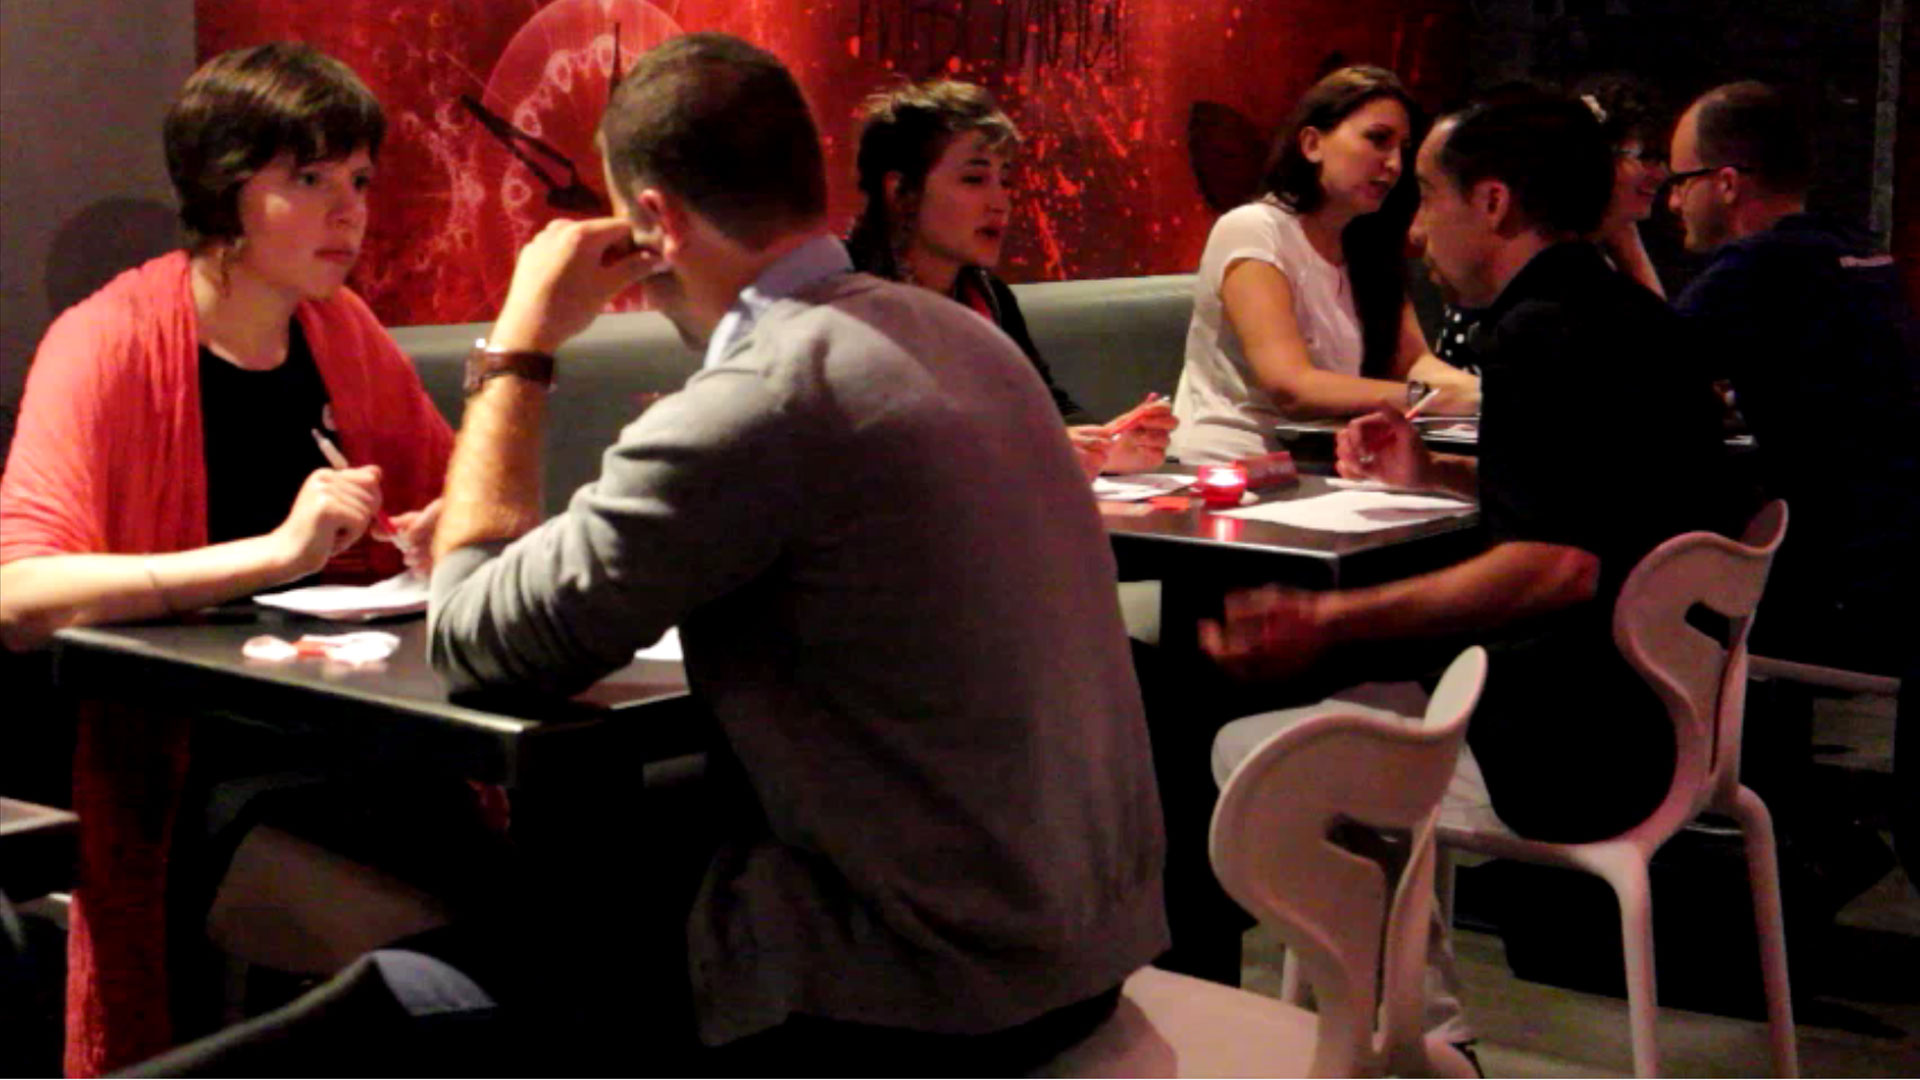 speed dating in chicago il May 2018, suite lounge, event in chicago - speed dating relish - saturday night  1446 n wells st, chicago, il 60610 for more information visit us at: dorelishcom.